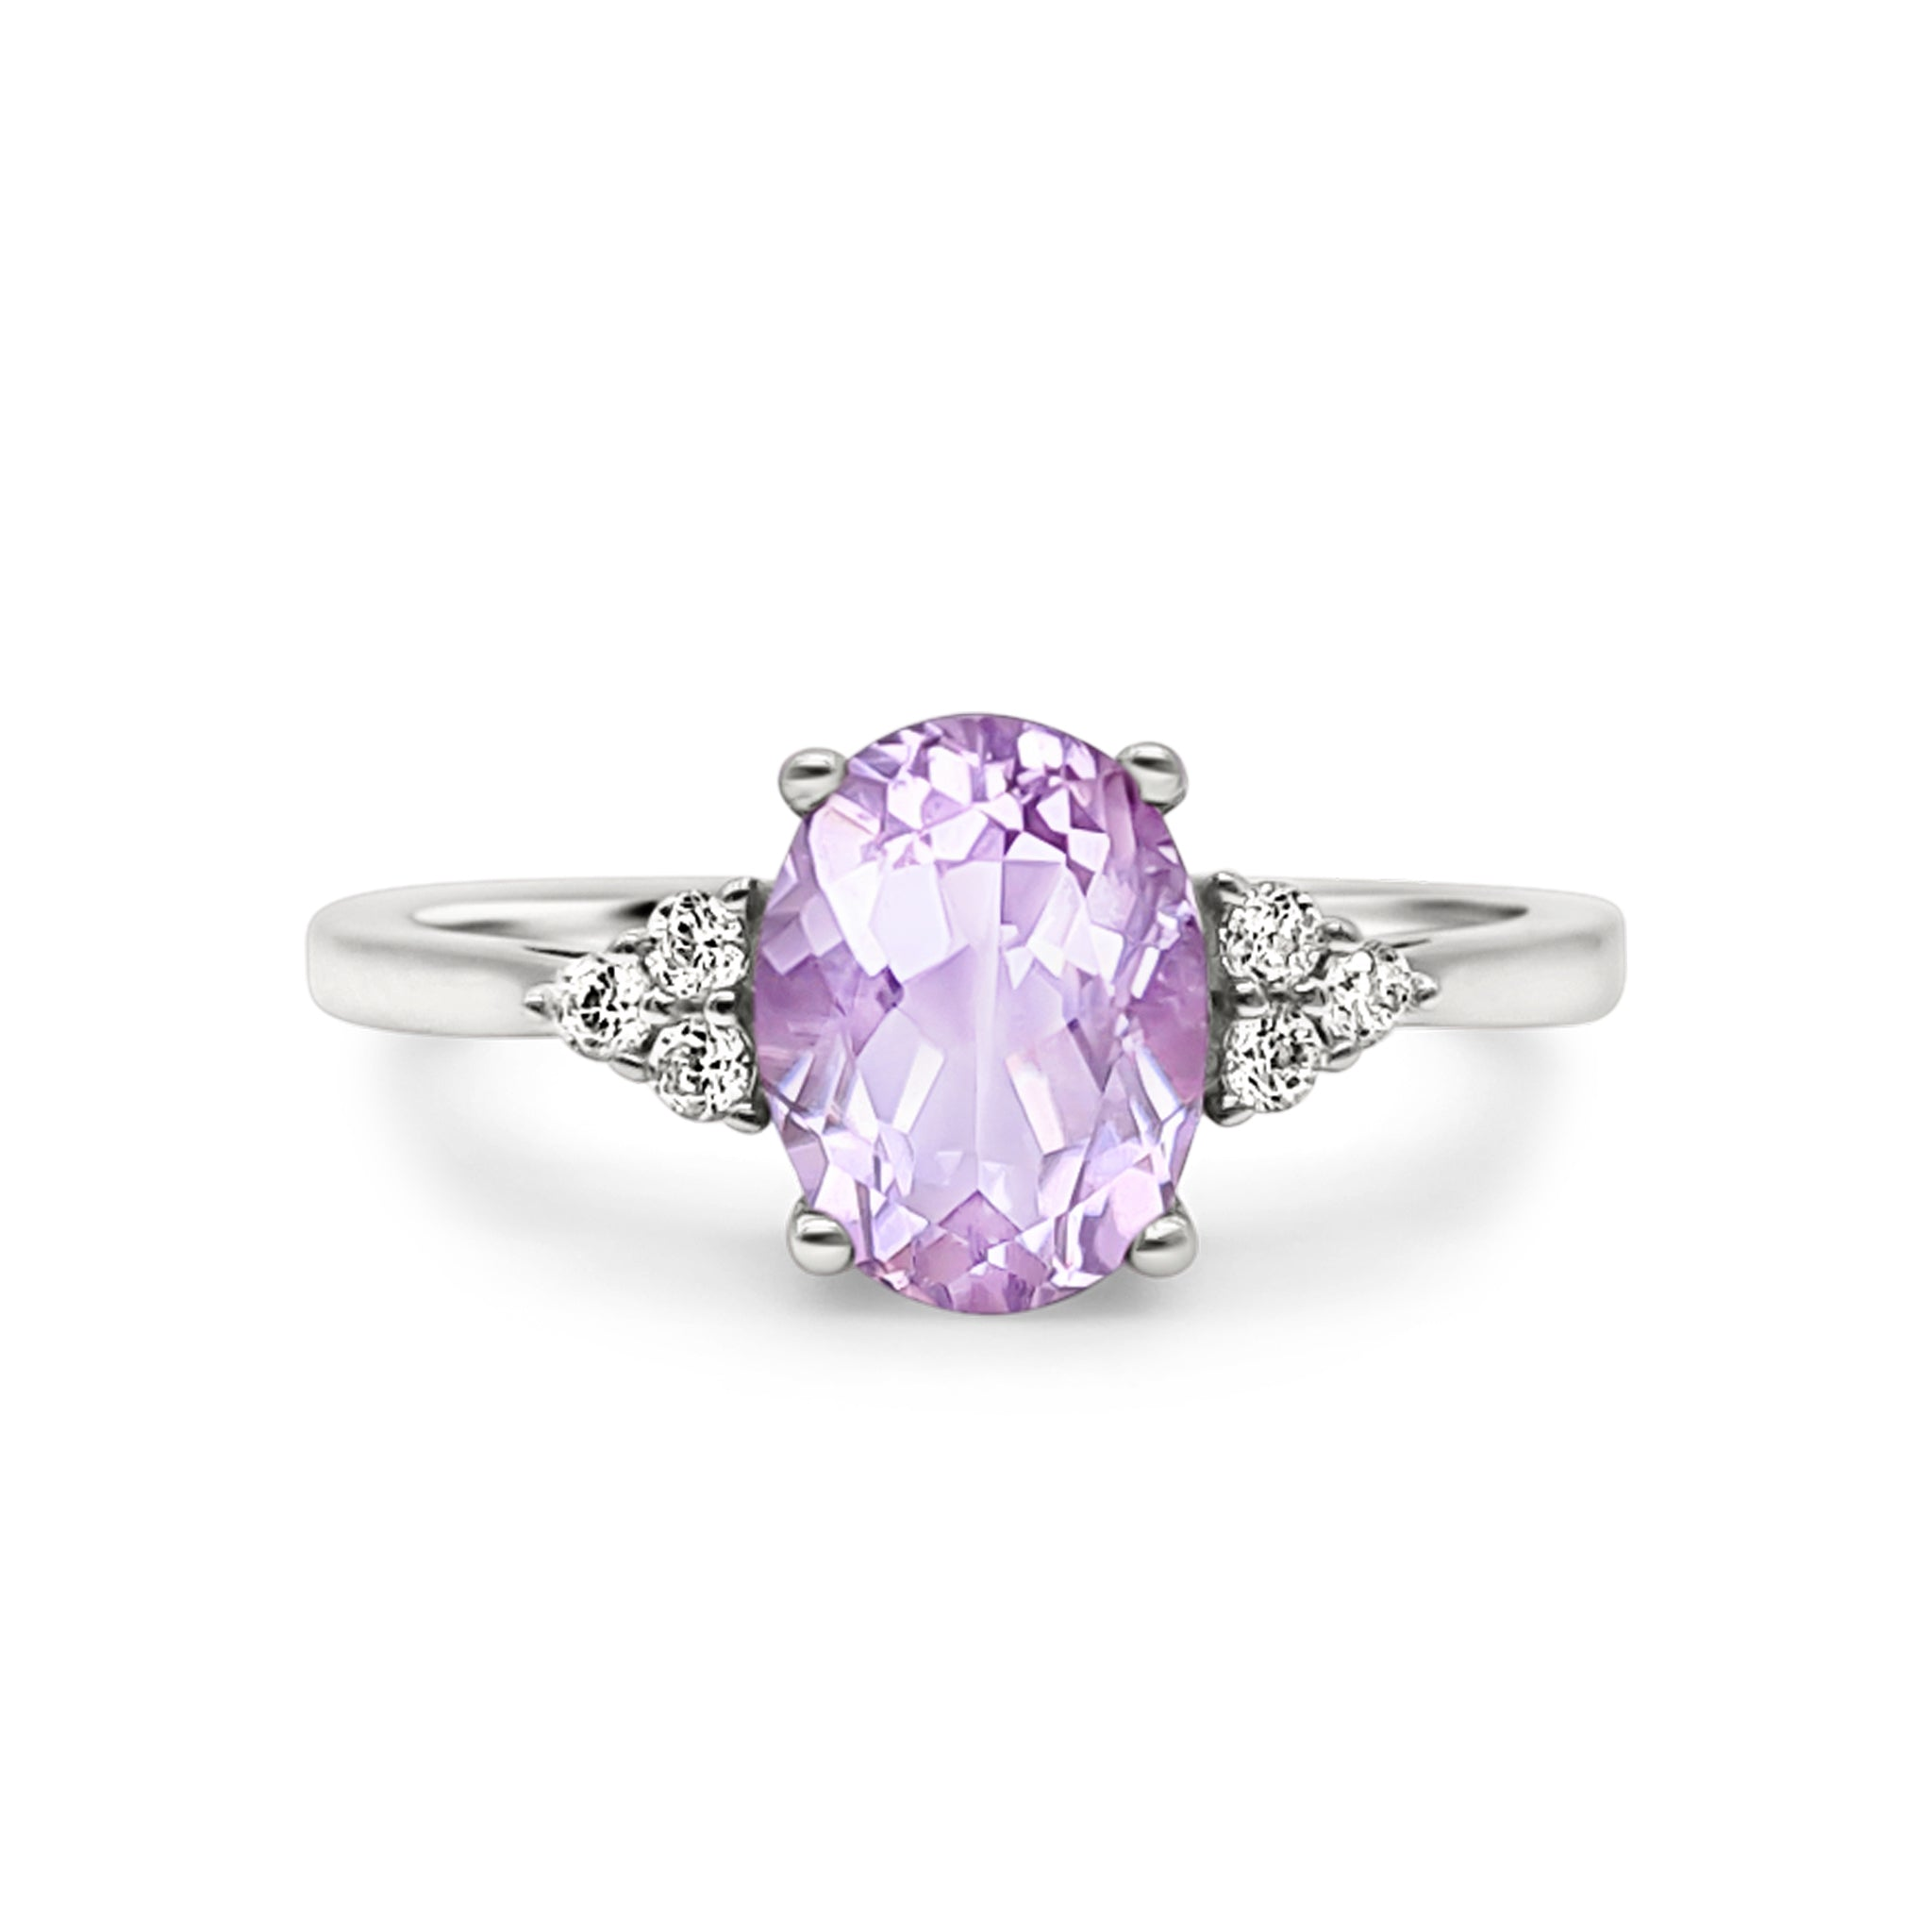 Sterling Silver Lavender Amethyst Ring